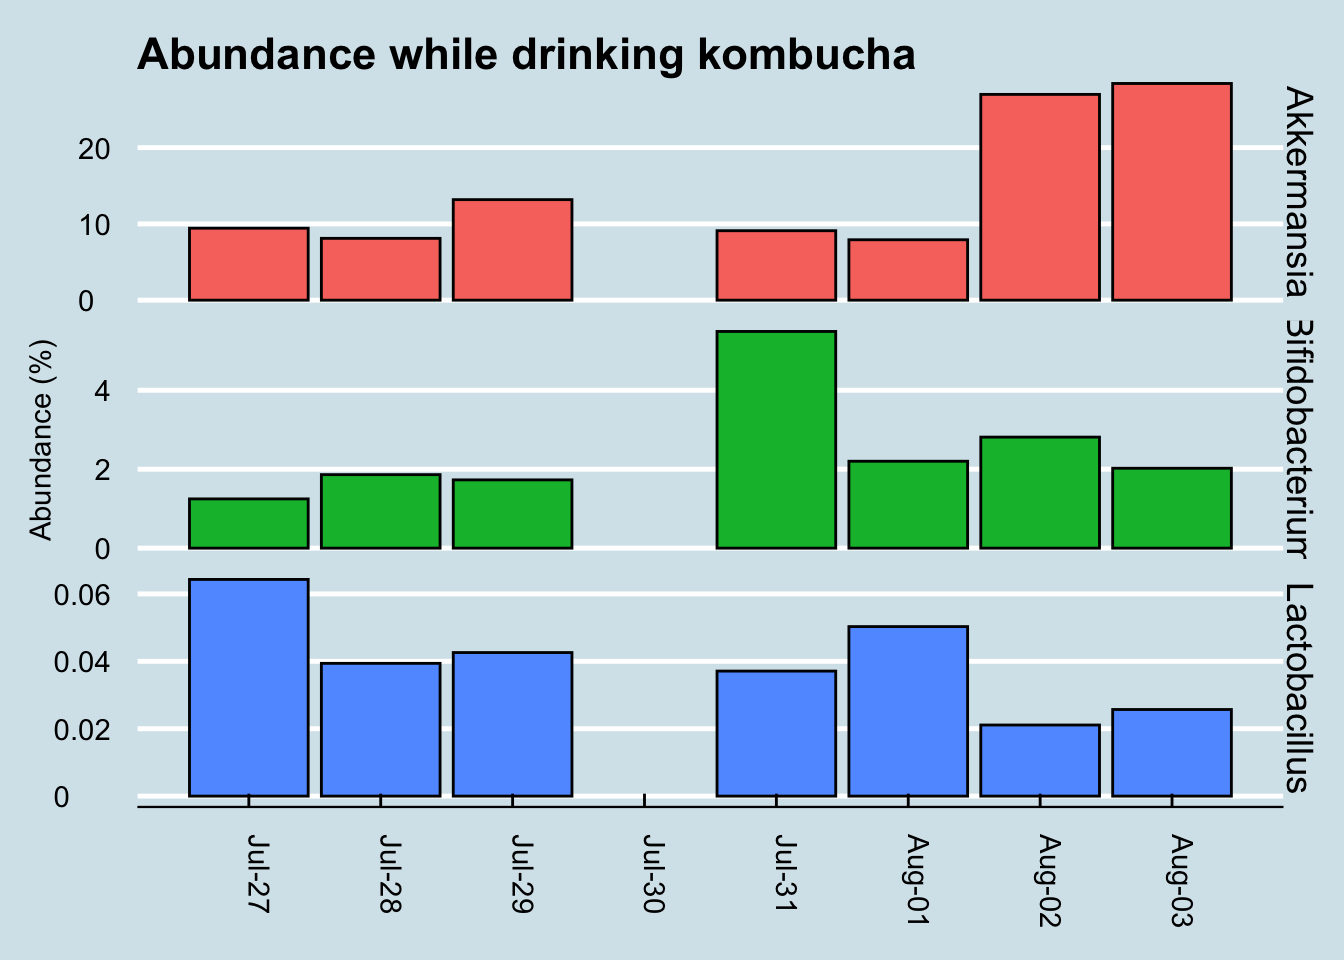 Abundance of key 'probiotic' microbes while consuming kombucha.